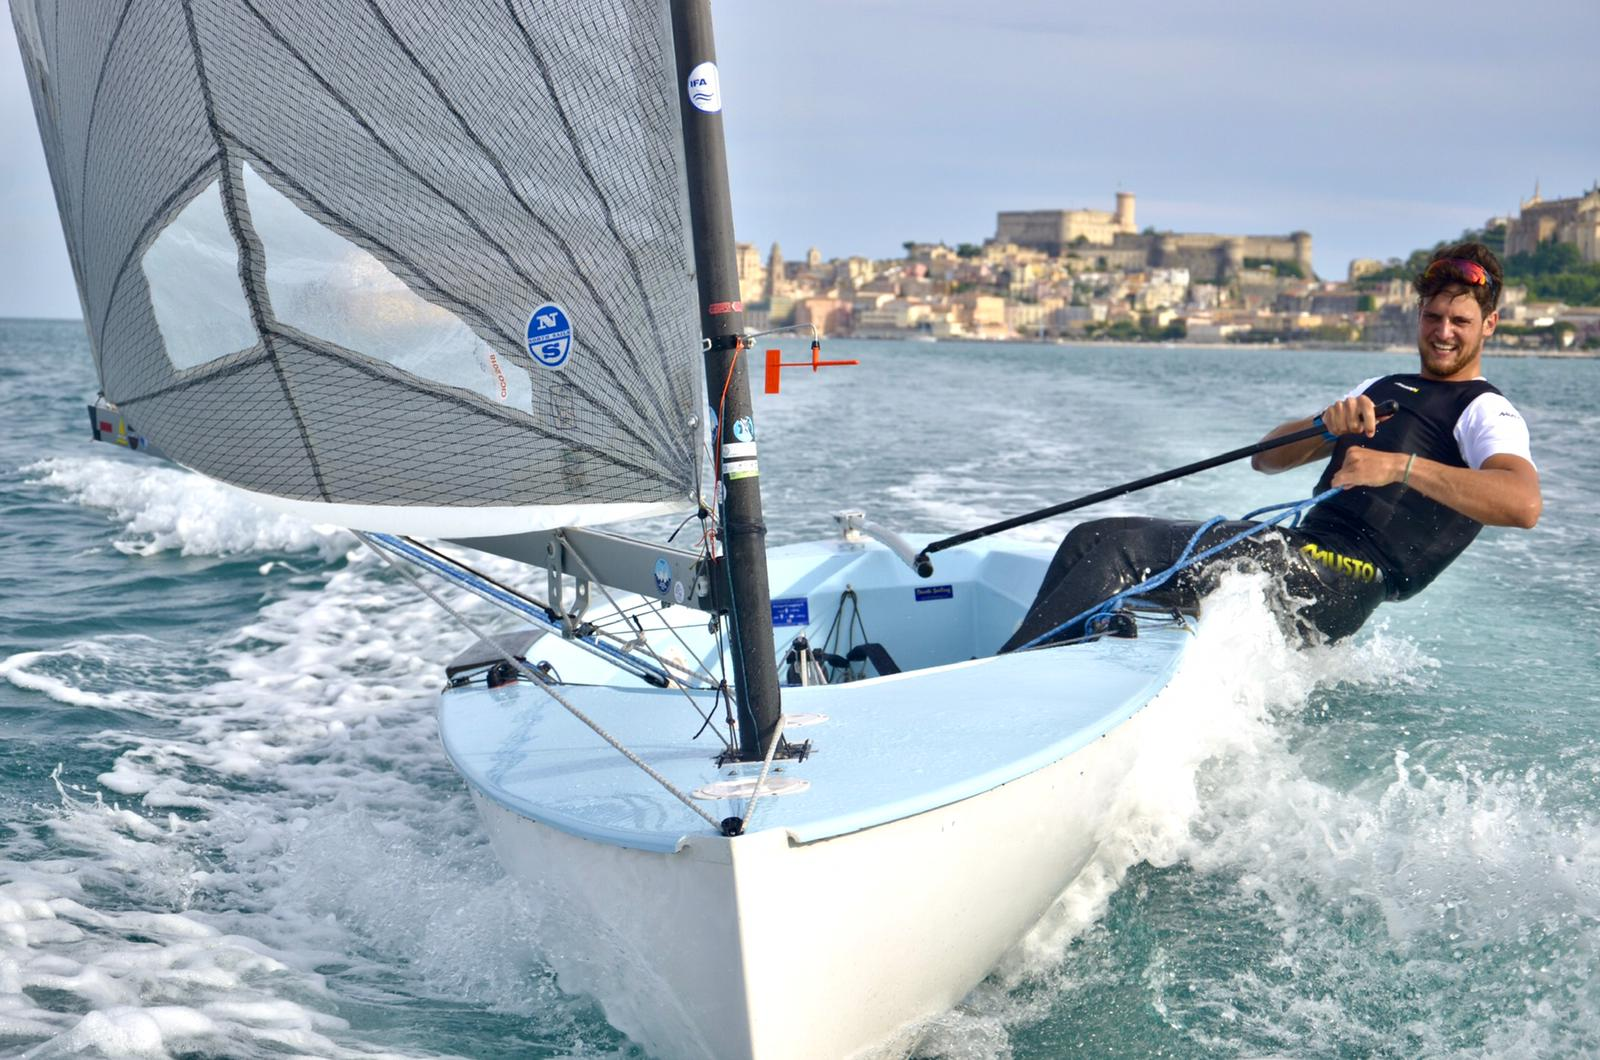 Victory for Federico Colaninno at CICO - NEWS - Yacht Club Costa Smeralda